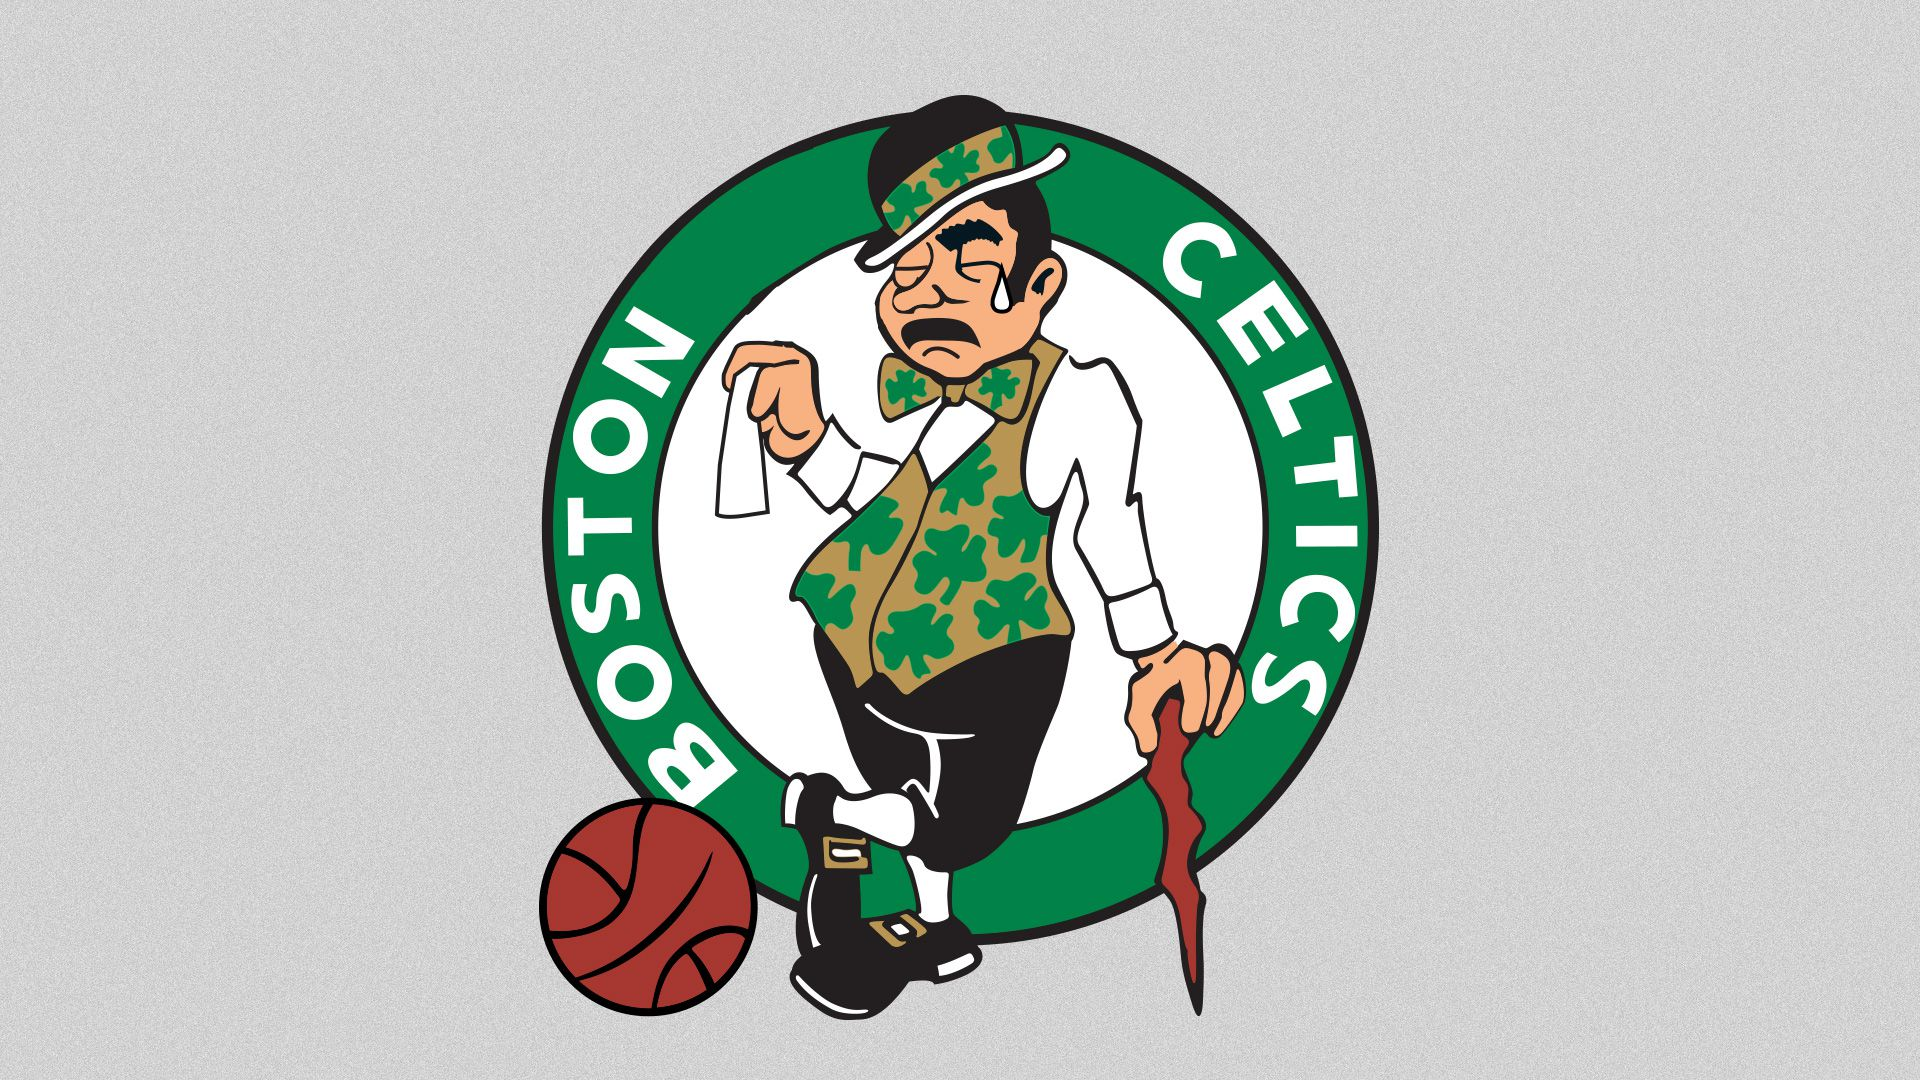 Celtics logo crying